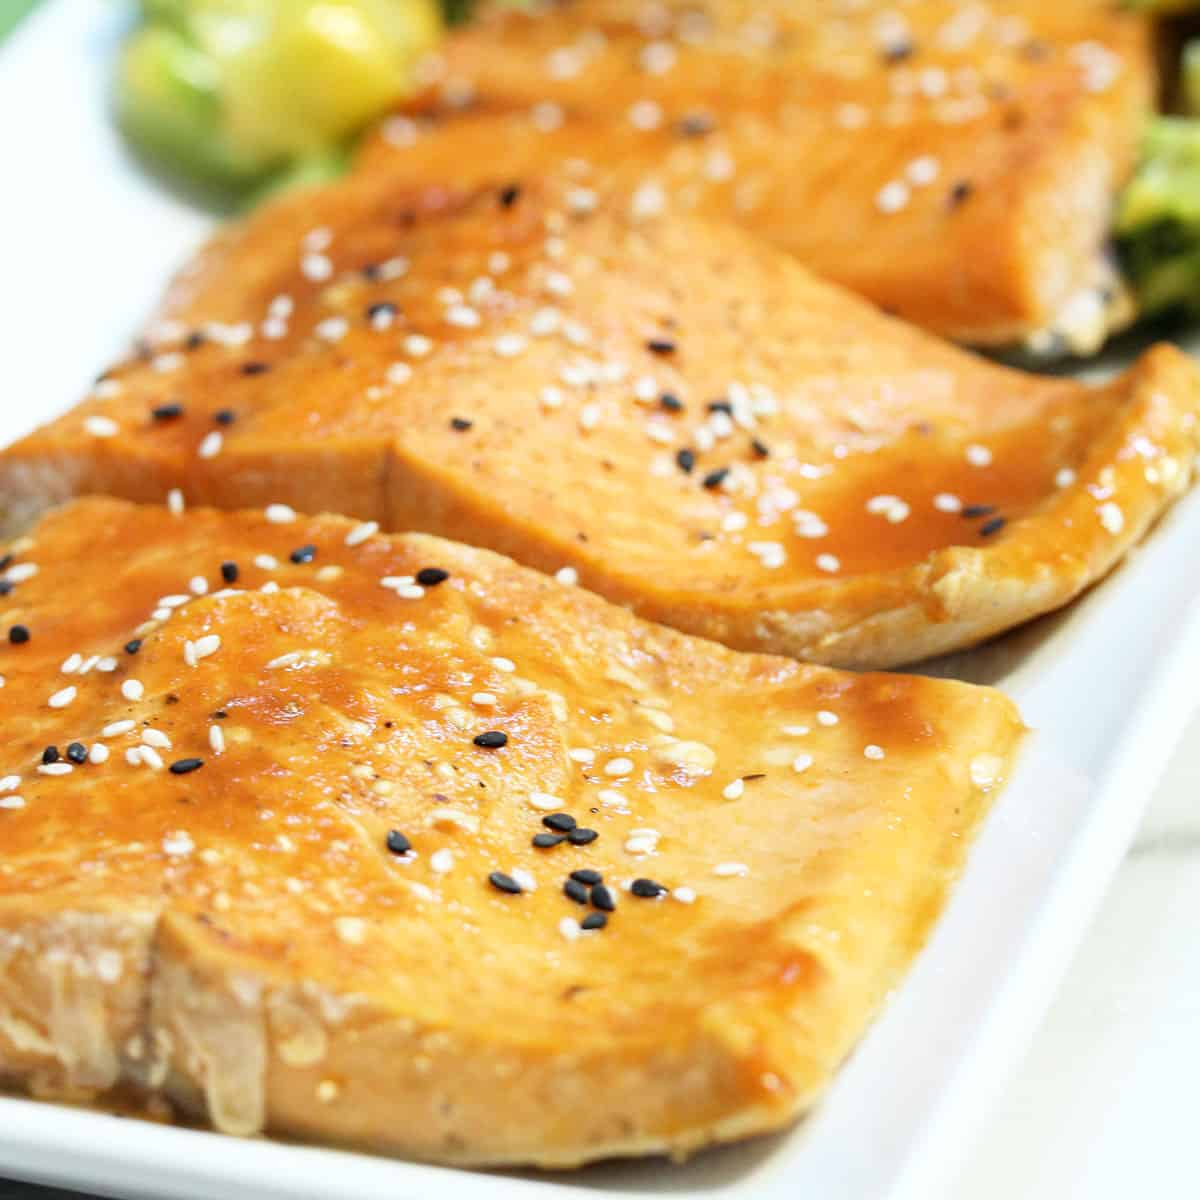 Closeup of broiled salmon on white platter.